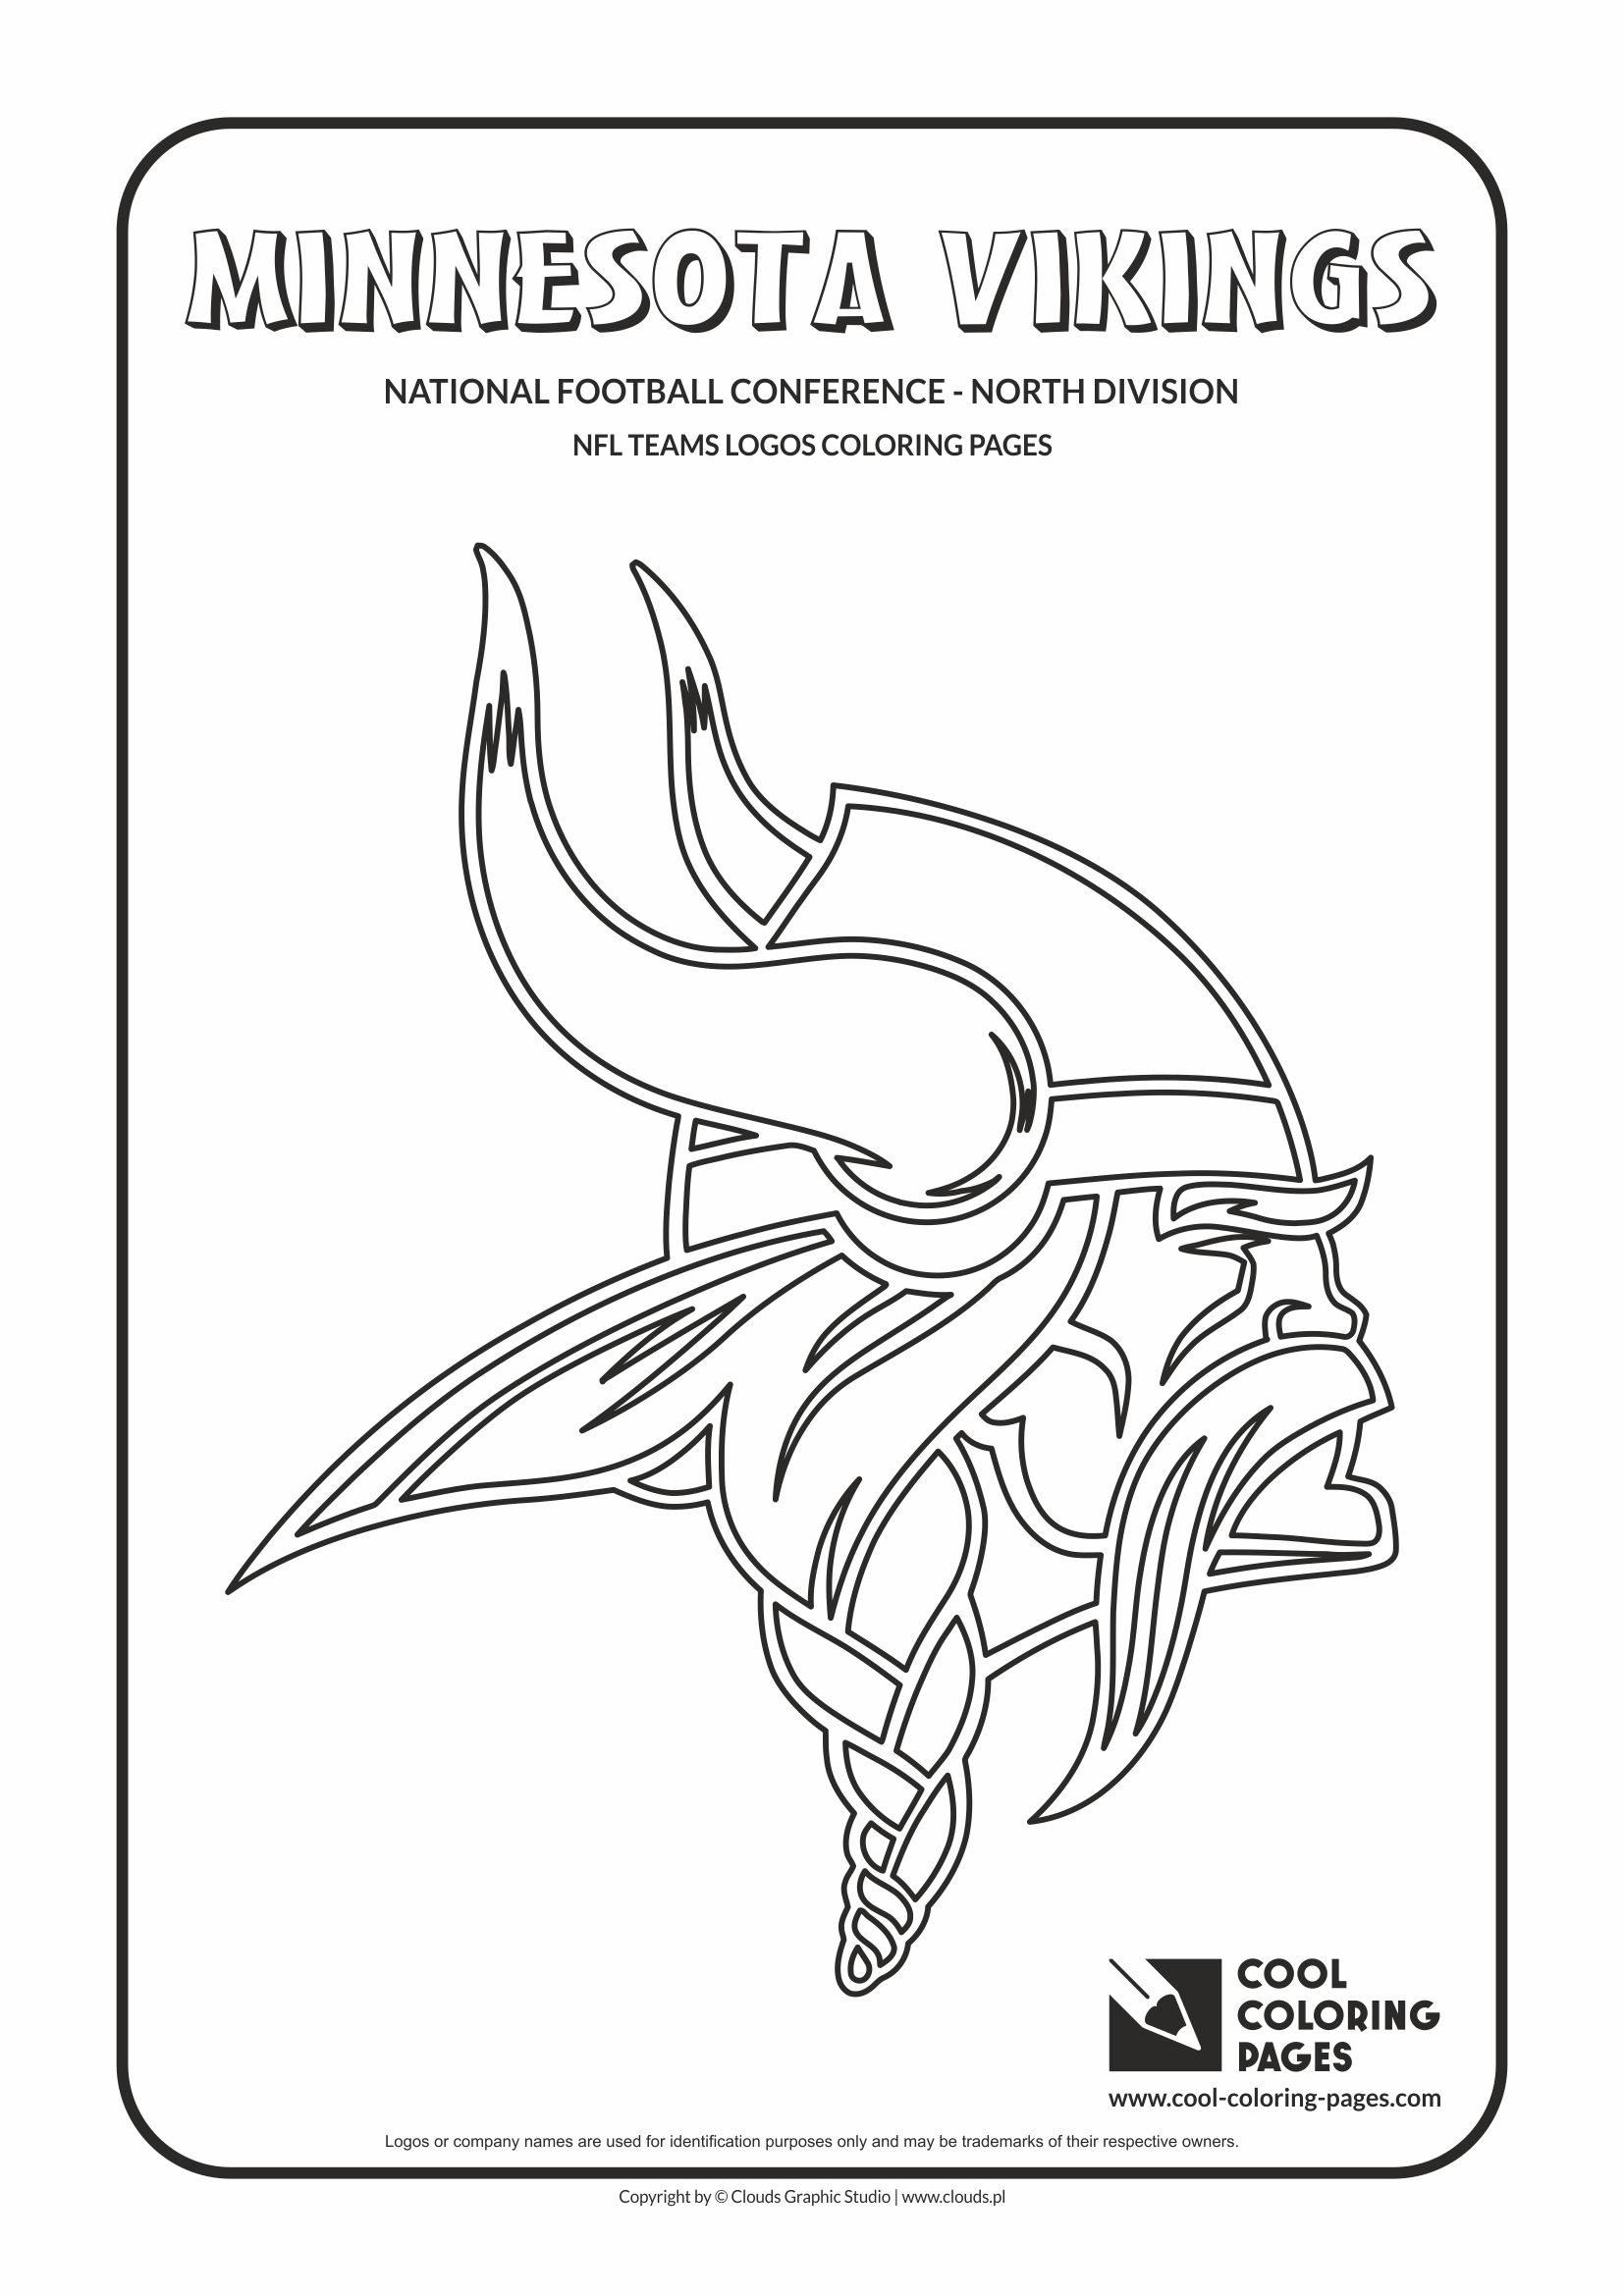 Cool Coloring Pages NFL teams logos coloring pages Cool Coloring